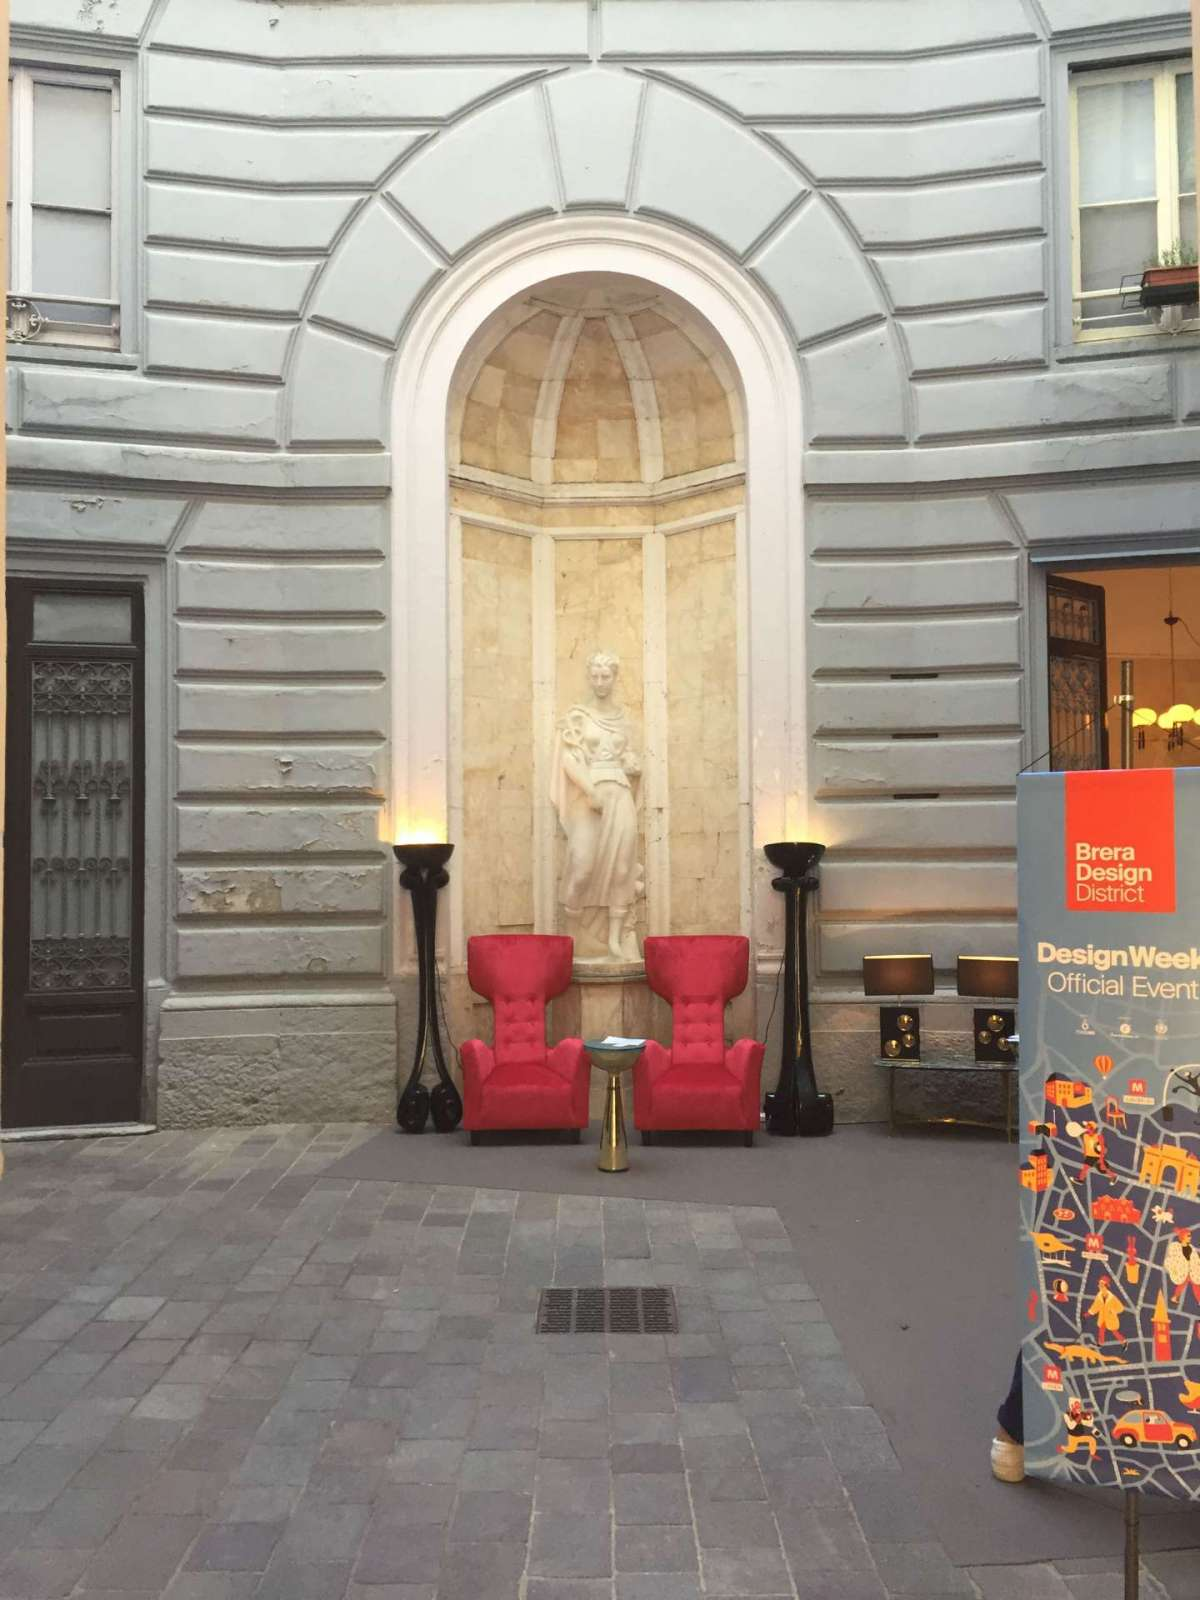 Cortile del Brera Design District